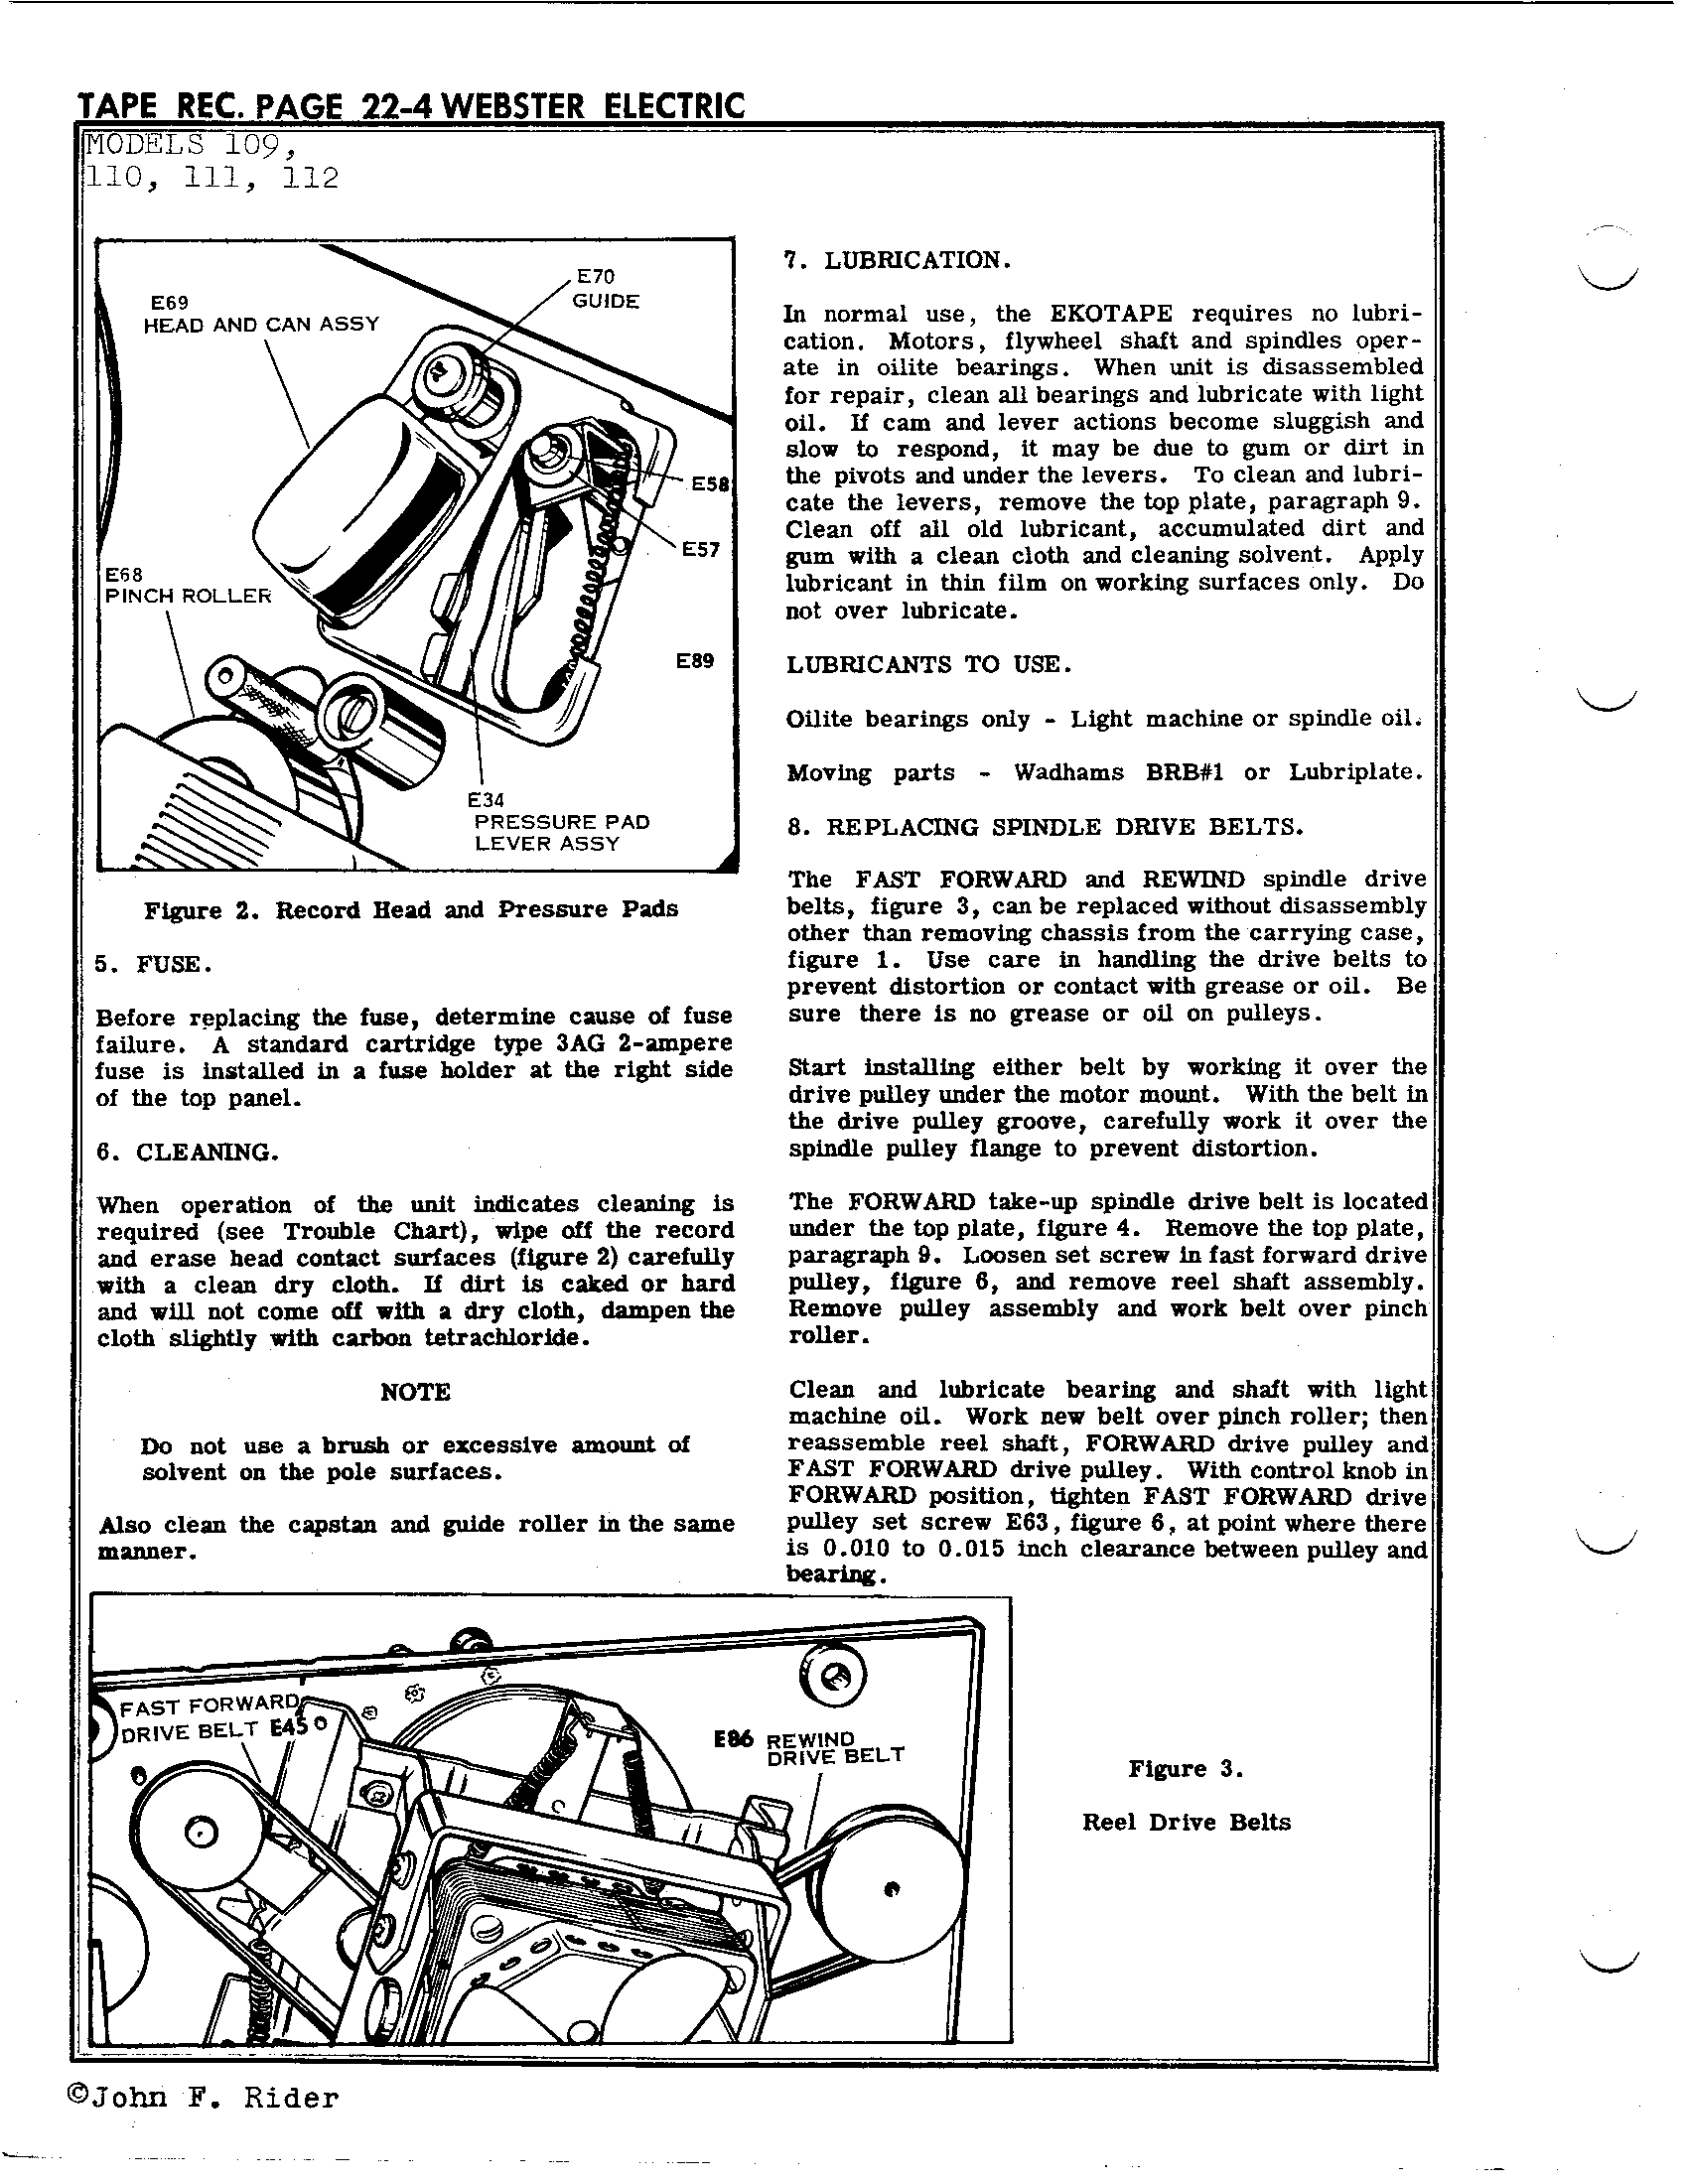 Webster Electrical Corp 111 Antique Electronic Supply E34 Fuse Box Diagram Page 4 8193 Kb Rider Manual Volume 22